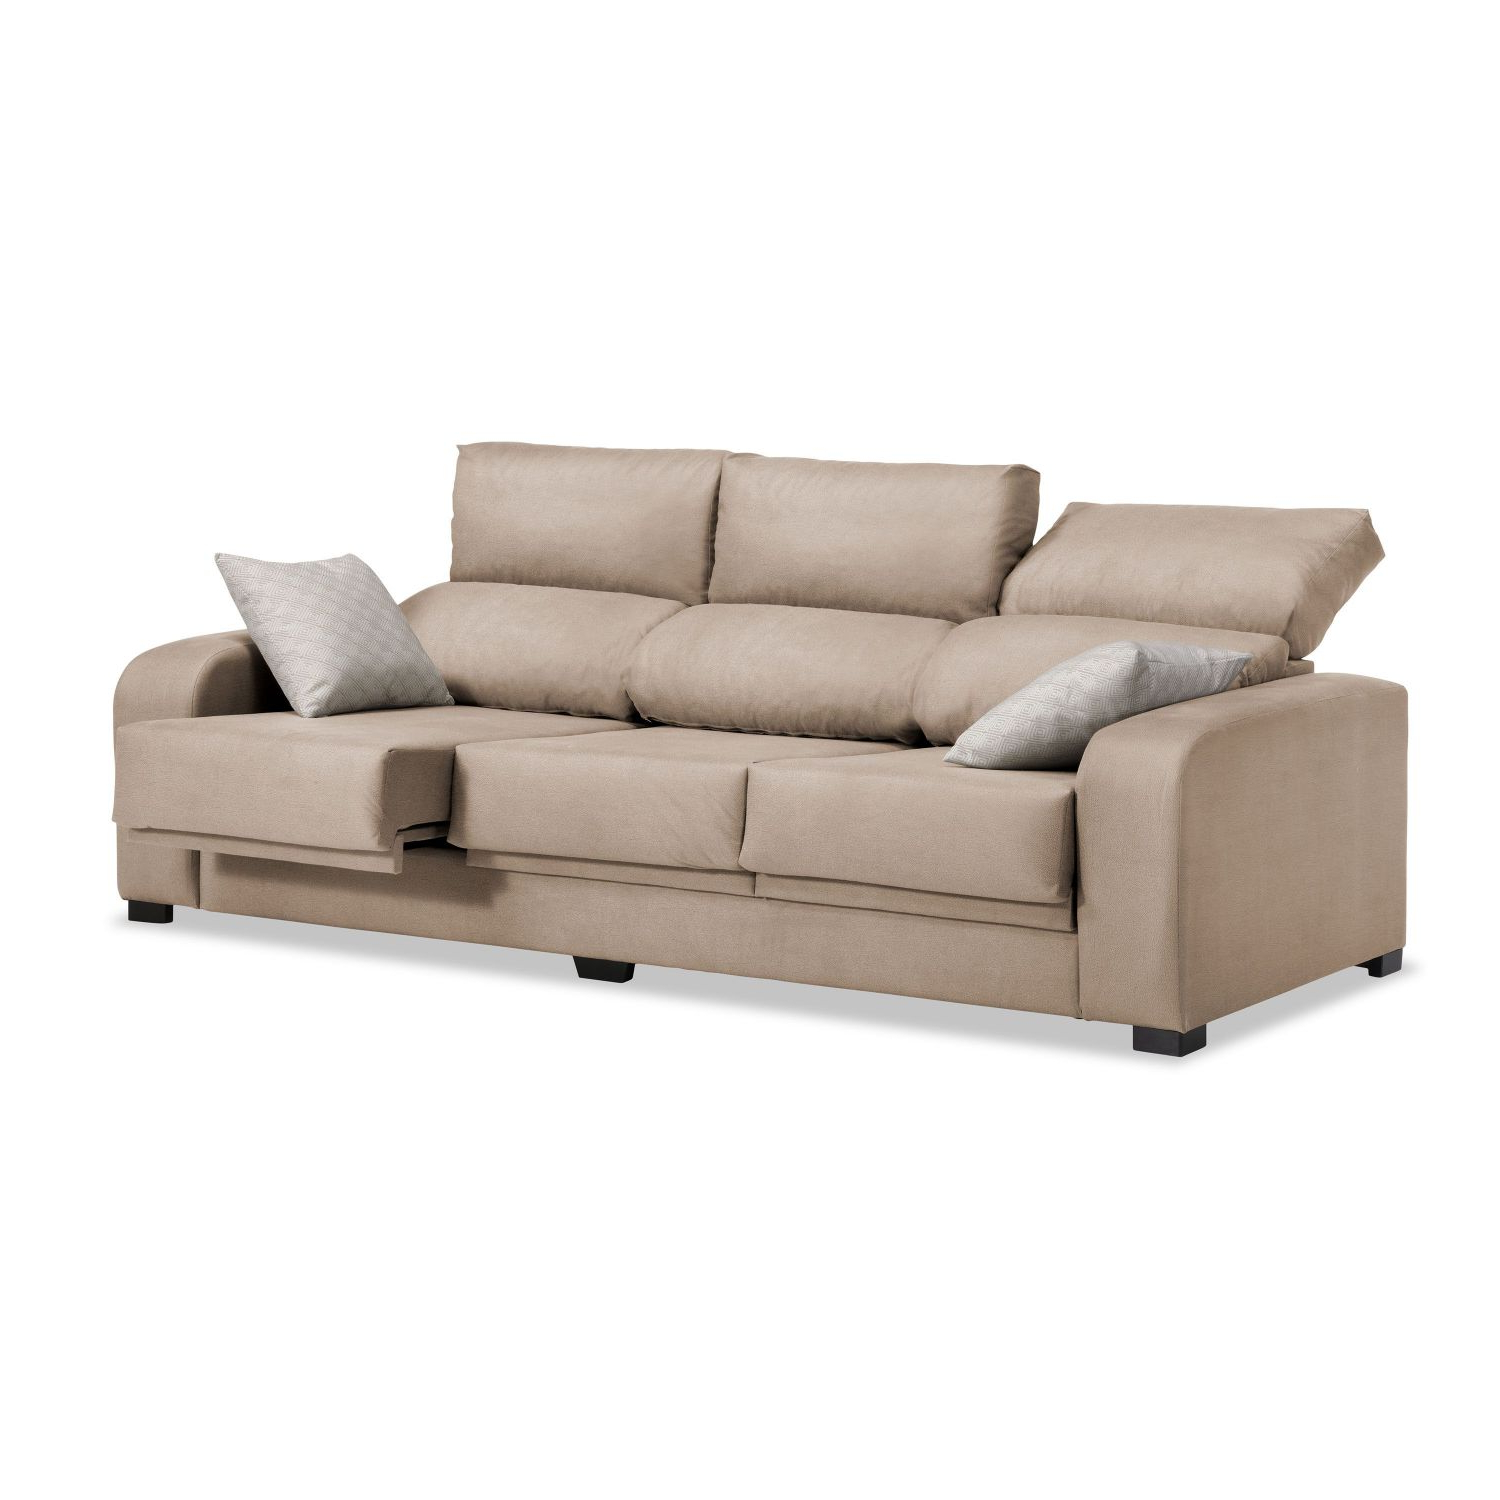 Sofa Extensible 3 Plazas Y7du sofà 3 Plazas London Reclinable Extensible Desenfundable Beige 220 Cm